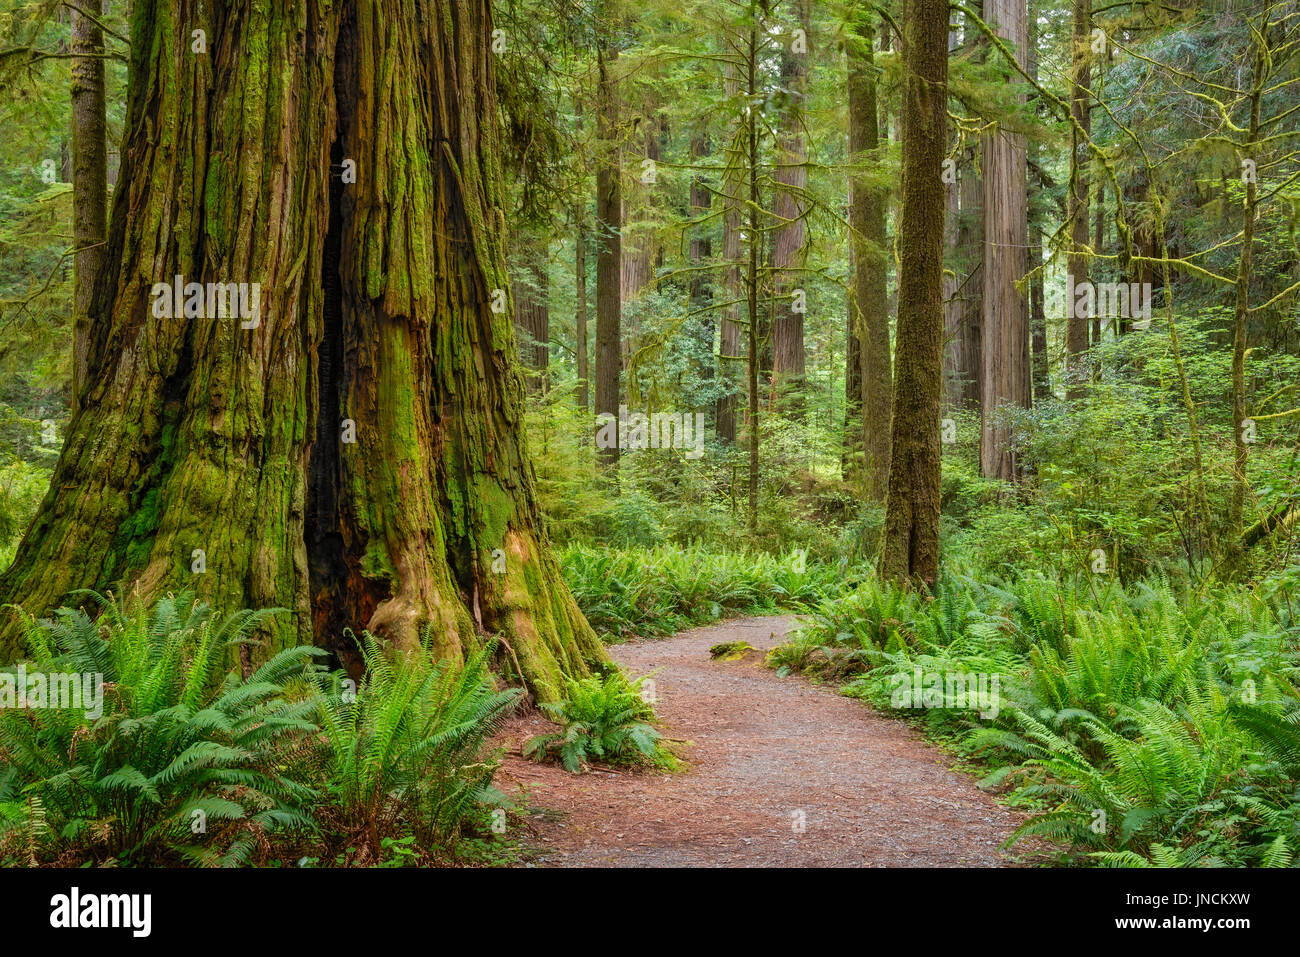 Trail through redwood trees in Simpson-Reed Grove, Jedediah Smith State Park, California. - Stock Image